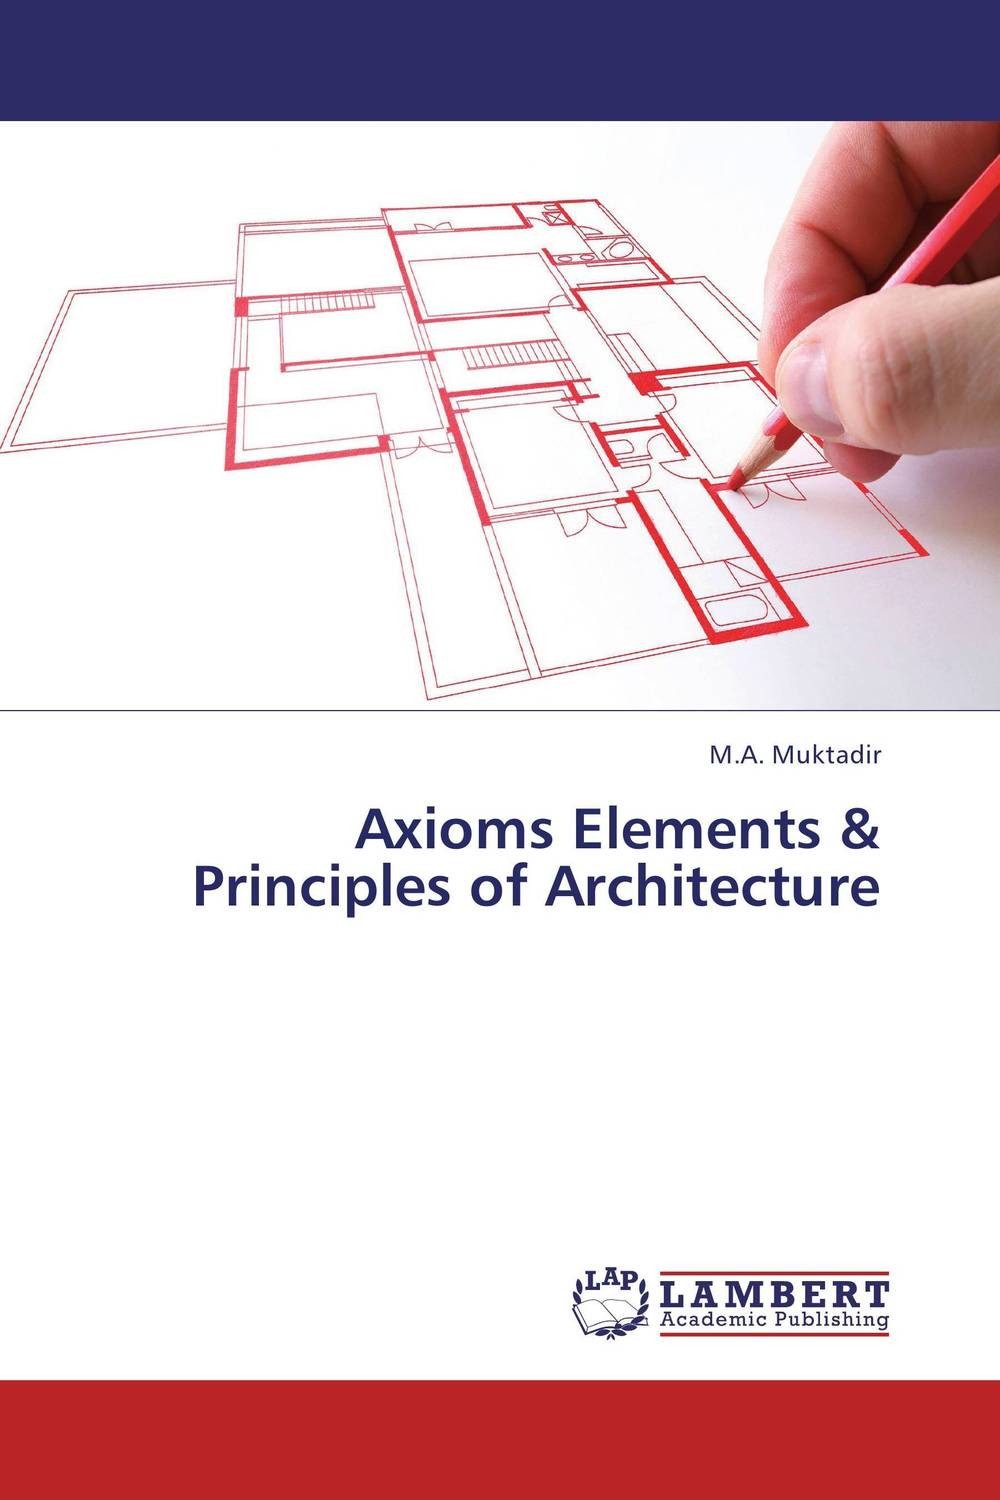 Axioms Elements & Principles of Architecture axioms elements